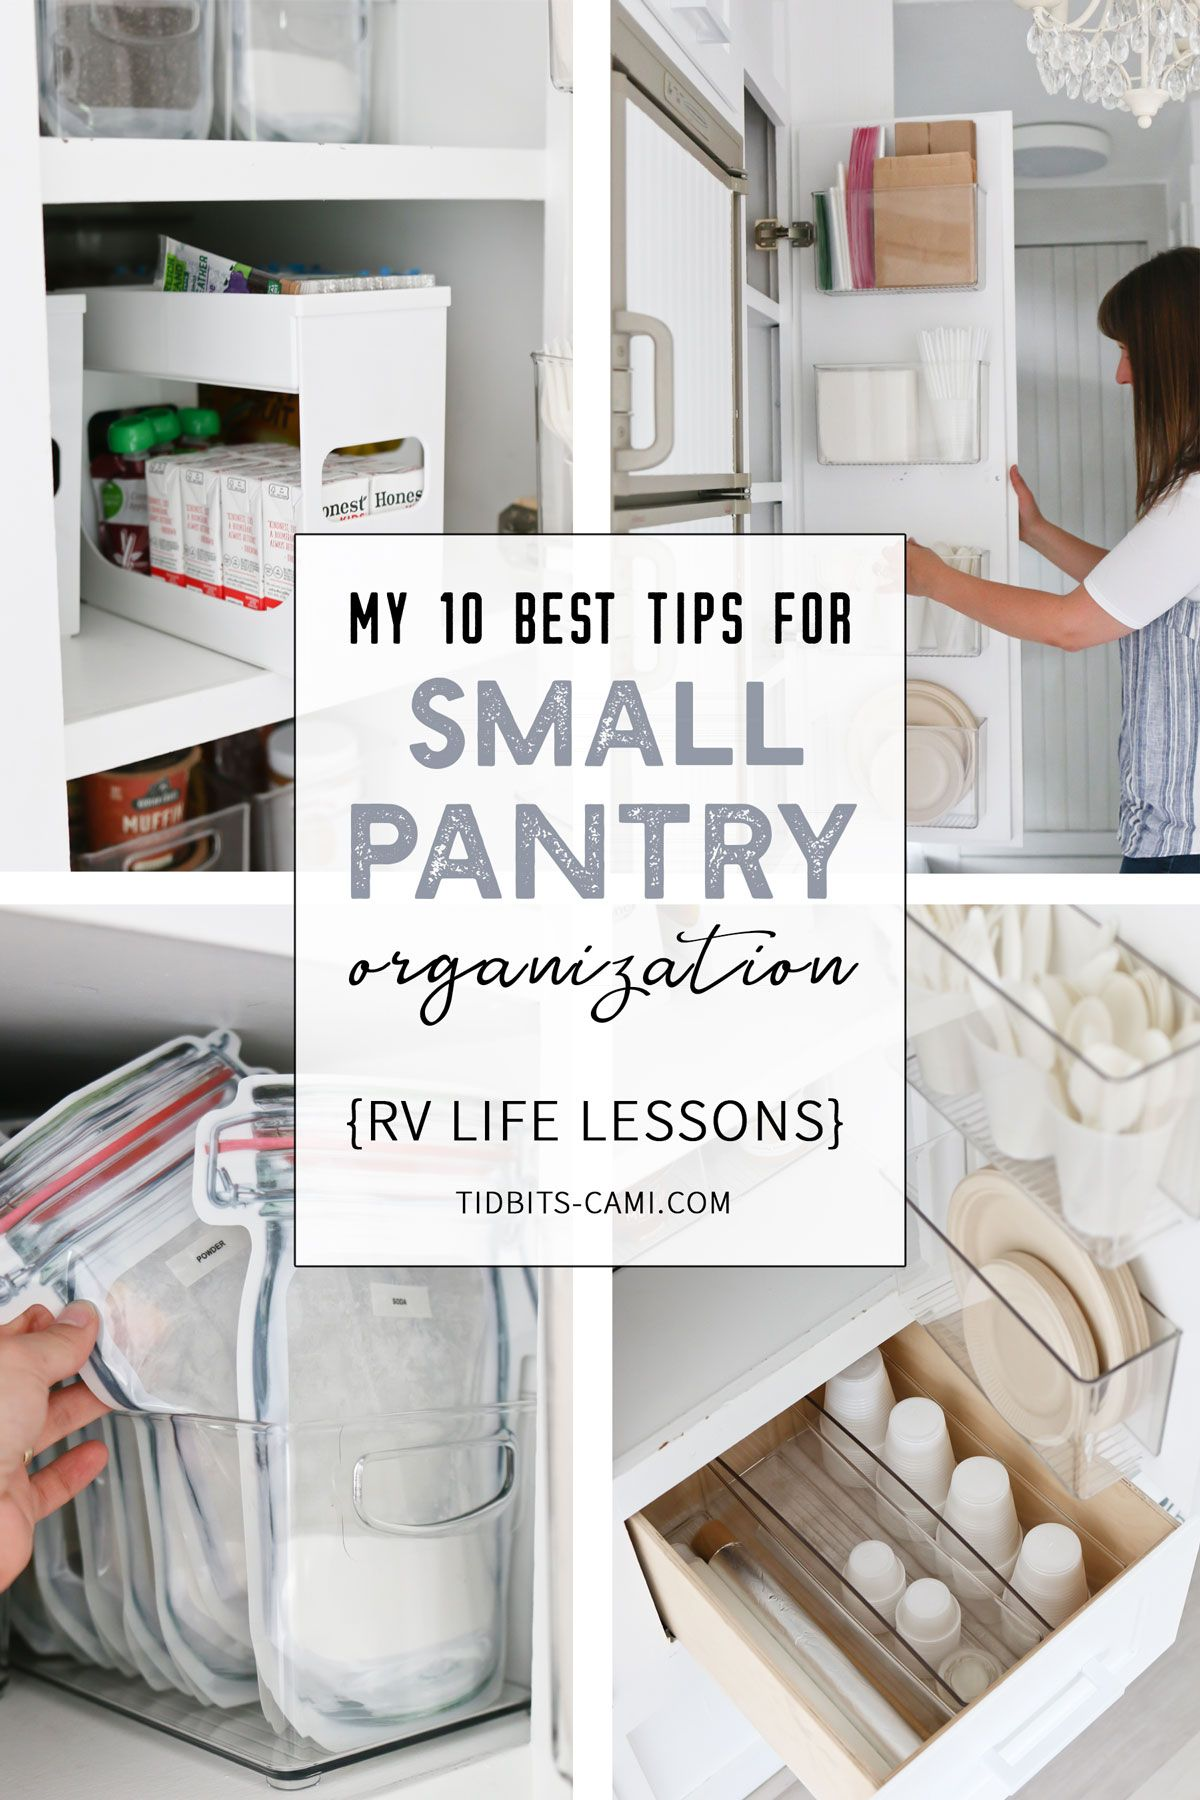 My 10 Best Tips for Small Pantry Organization | RV Life Lessons - Tidbits